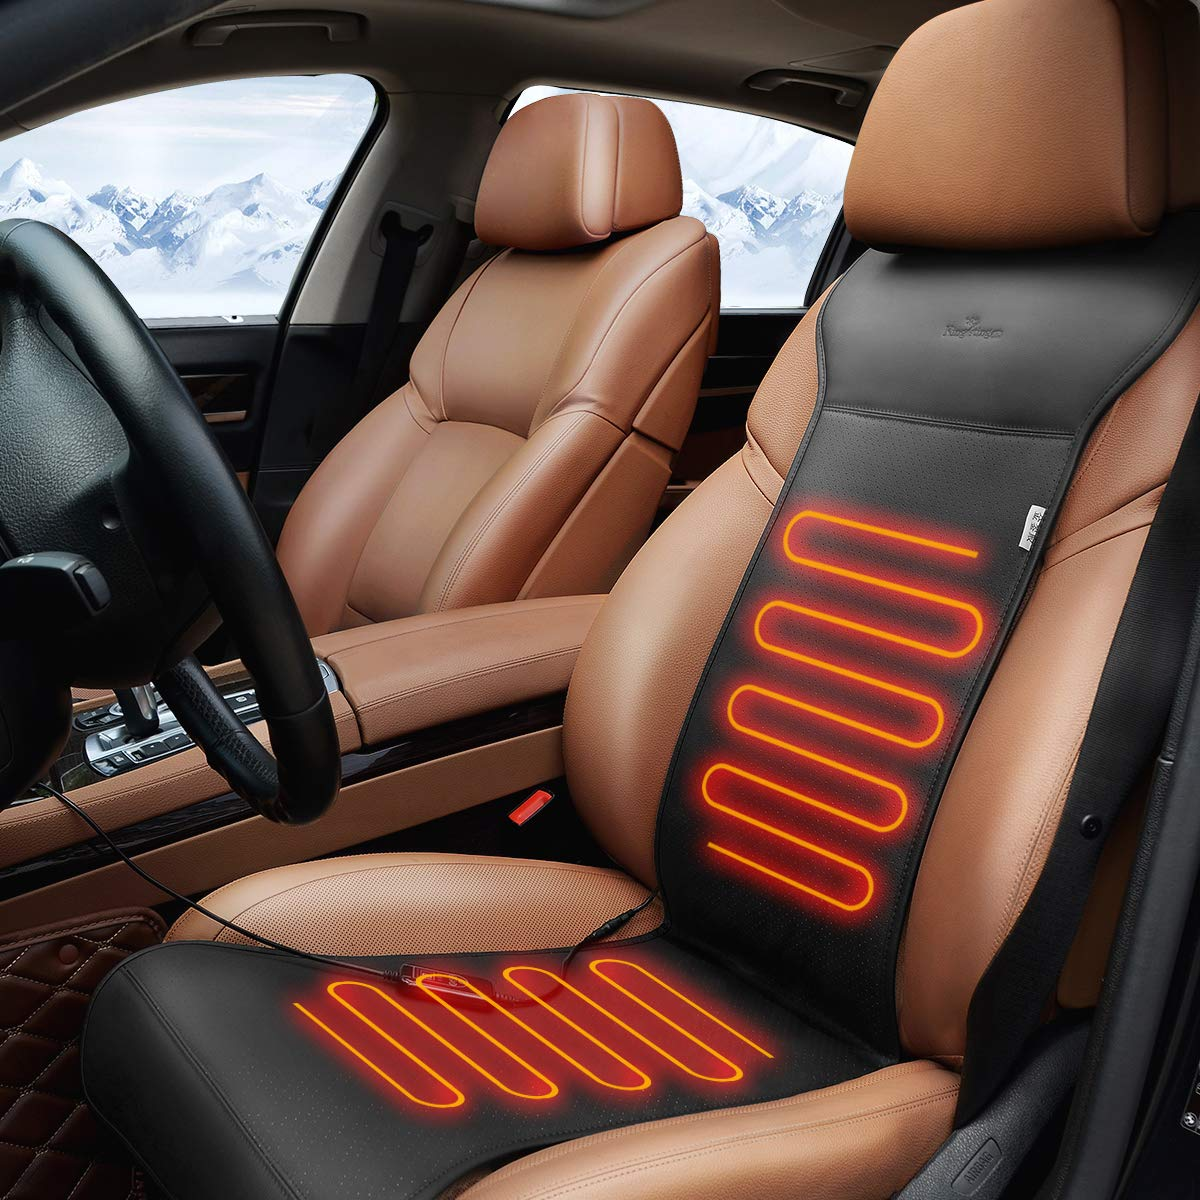 KINGLETING 12-Volt Heated Seat Cover with Intelligent Temperature Controller Image